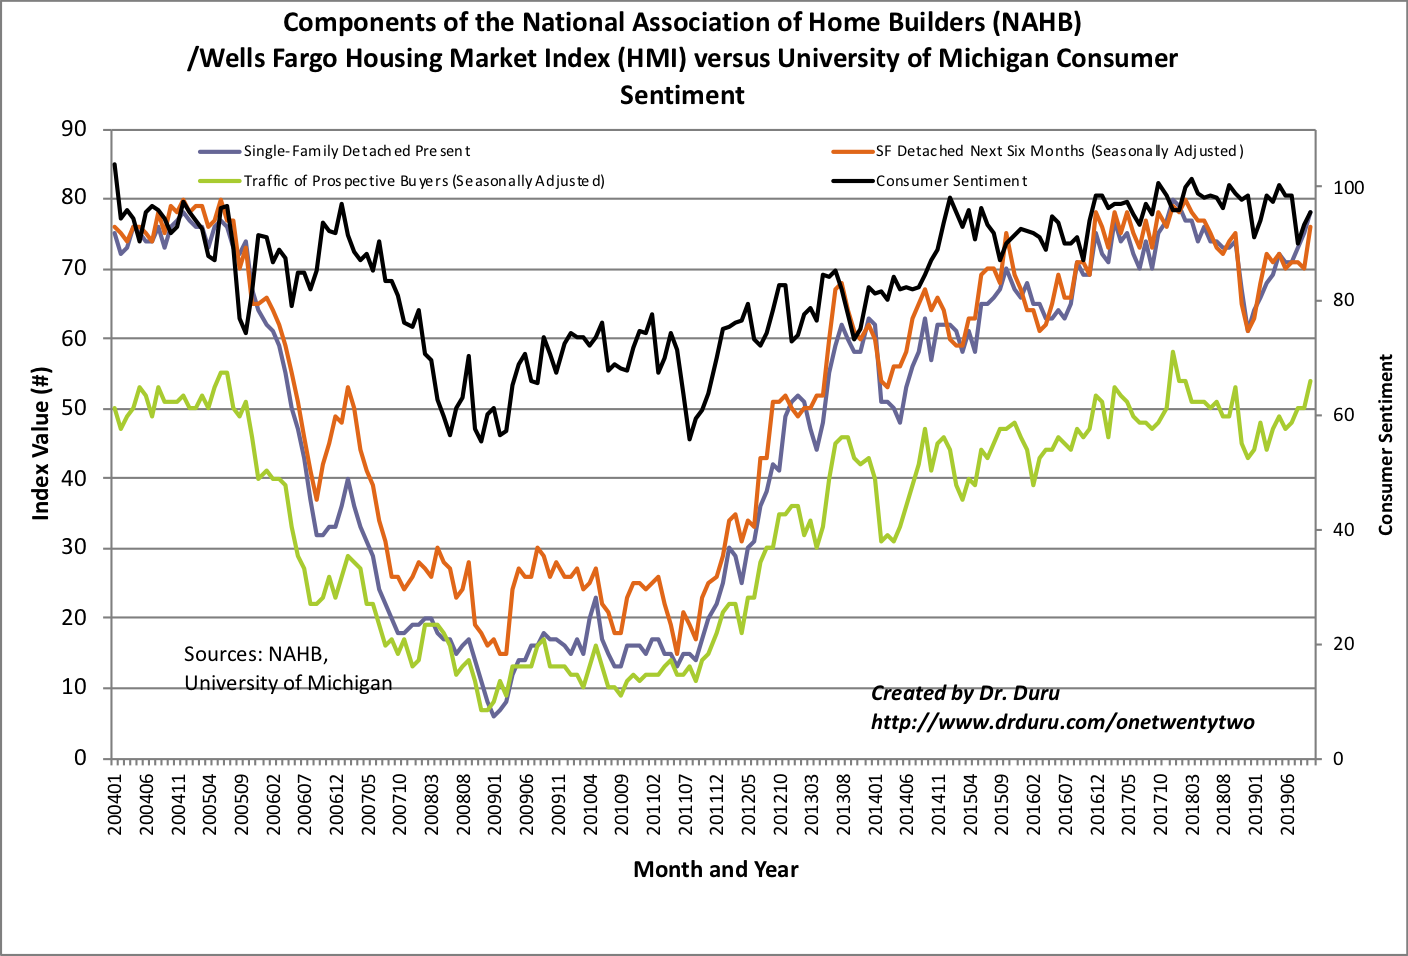 The Housing Market Index (HMI) soared in October thanks to a broad-based jump across its components alongside a on-going recovery in consumer sentiment.